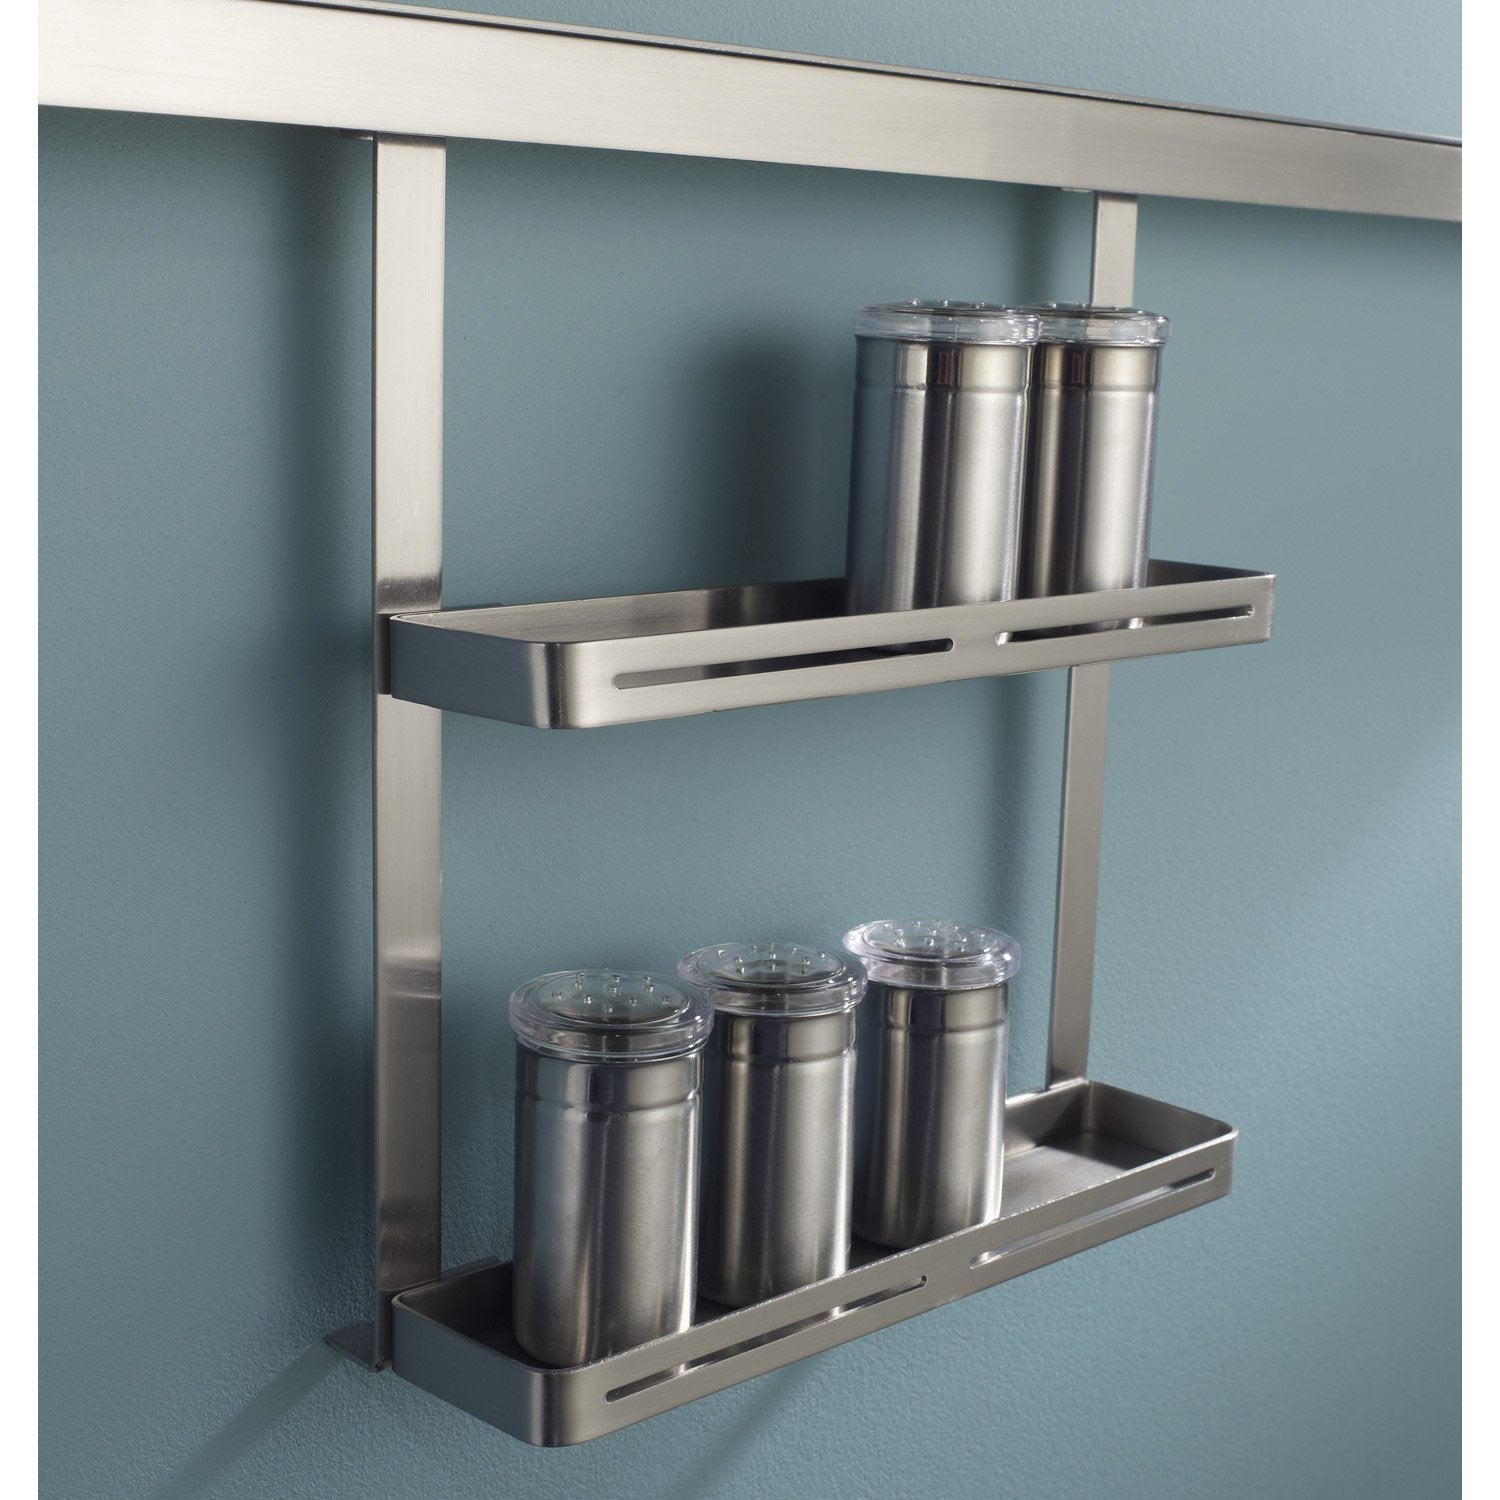 Etag re pices pour barre de cr dence m tal leroy merlin - Leroy merlin etagere metal ...